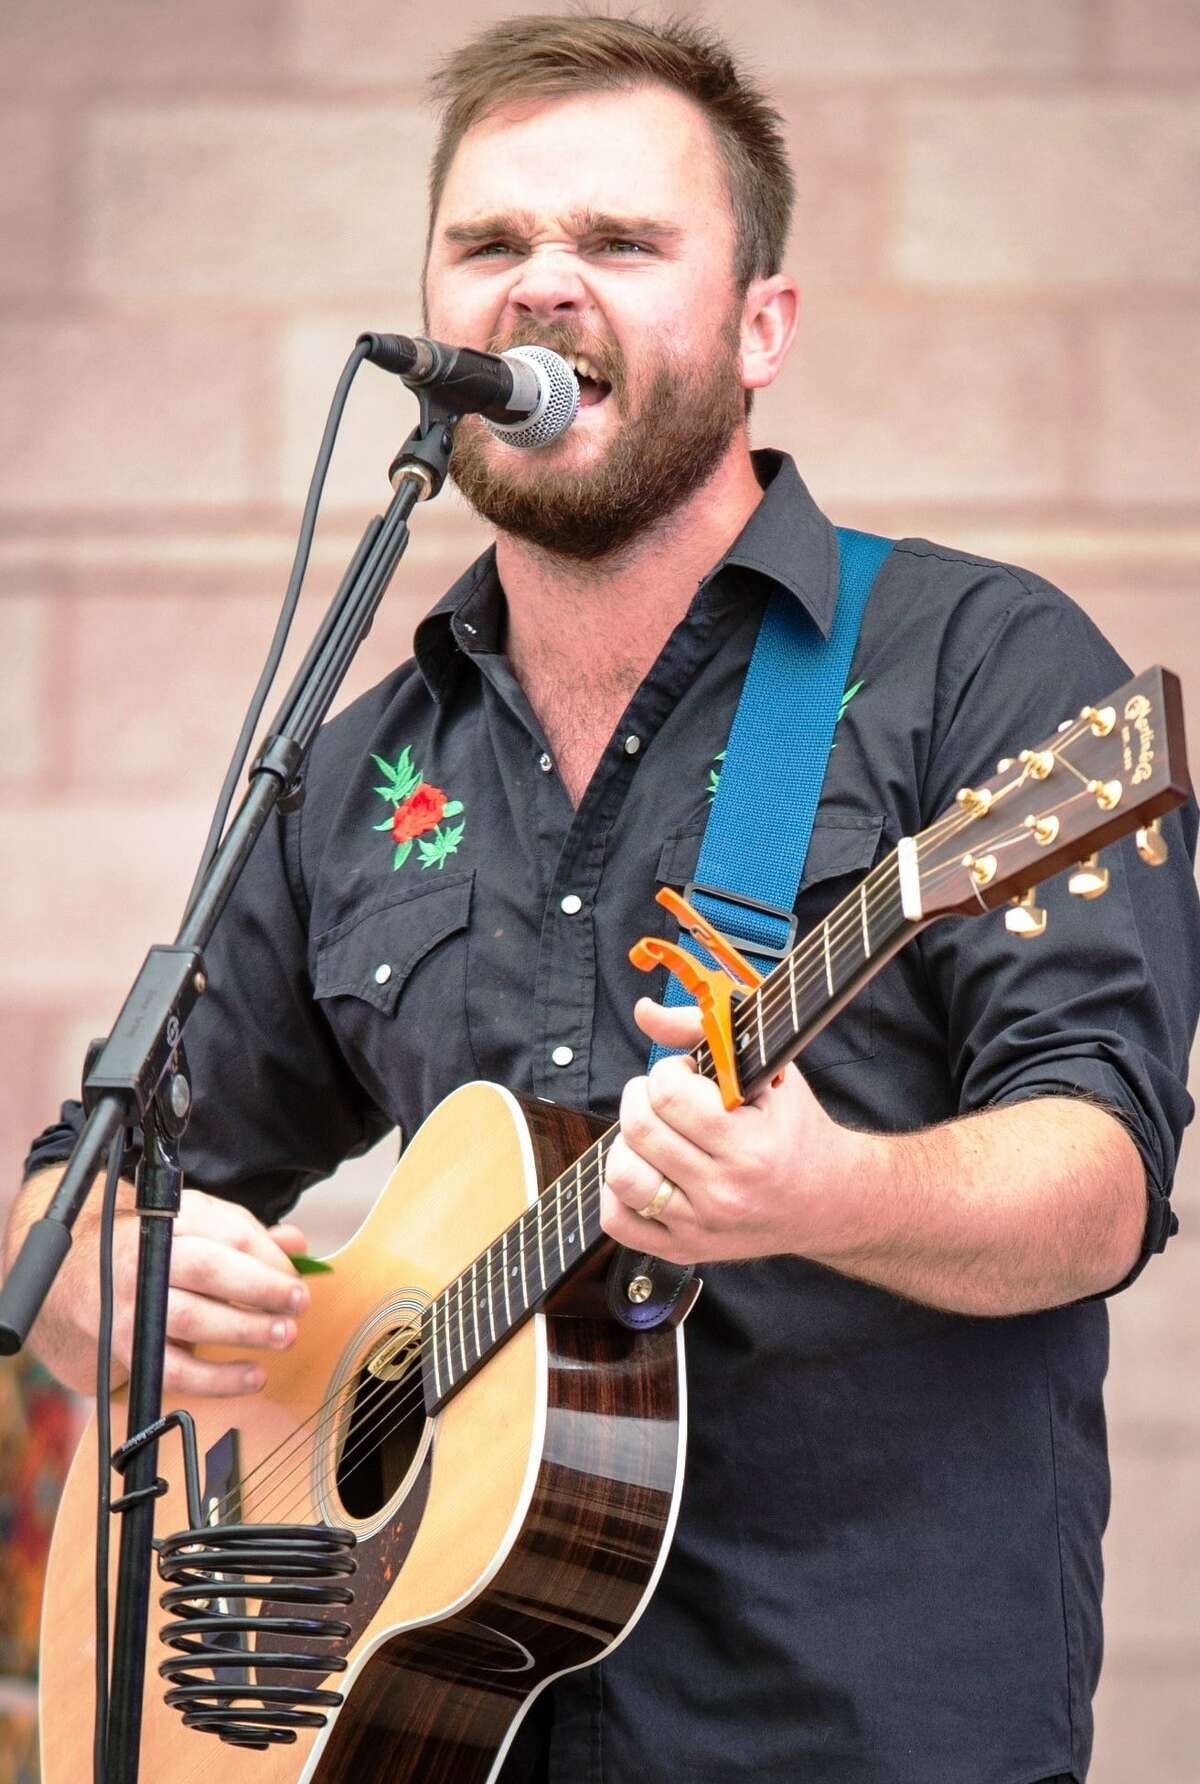 The San Antonio native and 2006 graduate of Churchill High School will celebrate the release of his second full-length album,